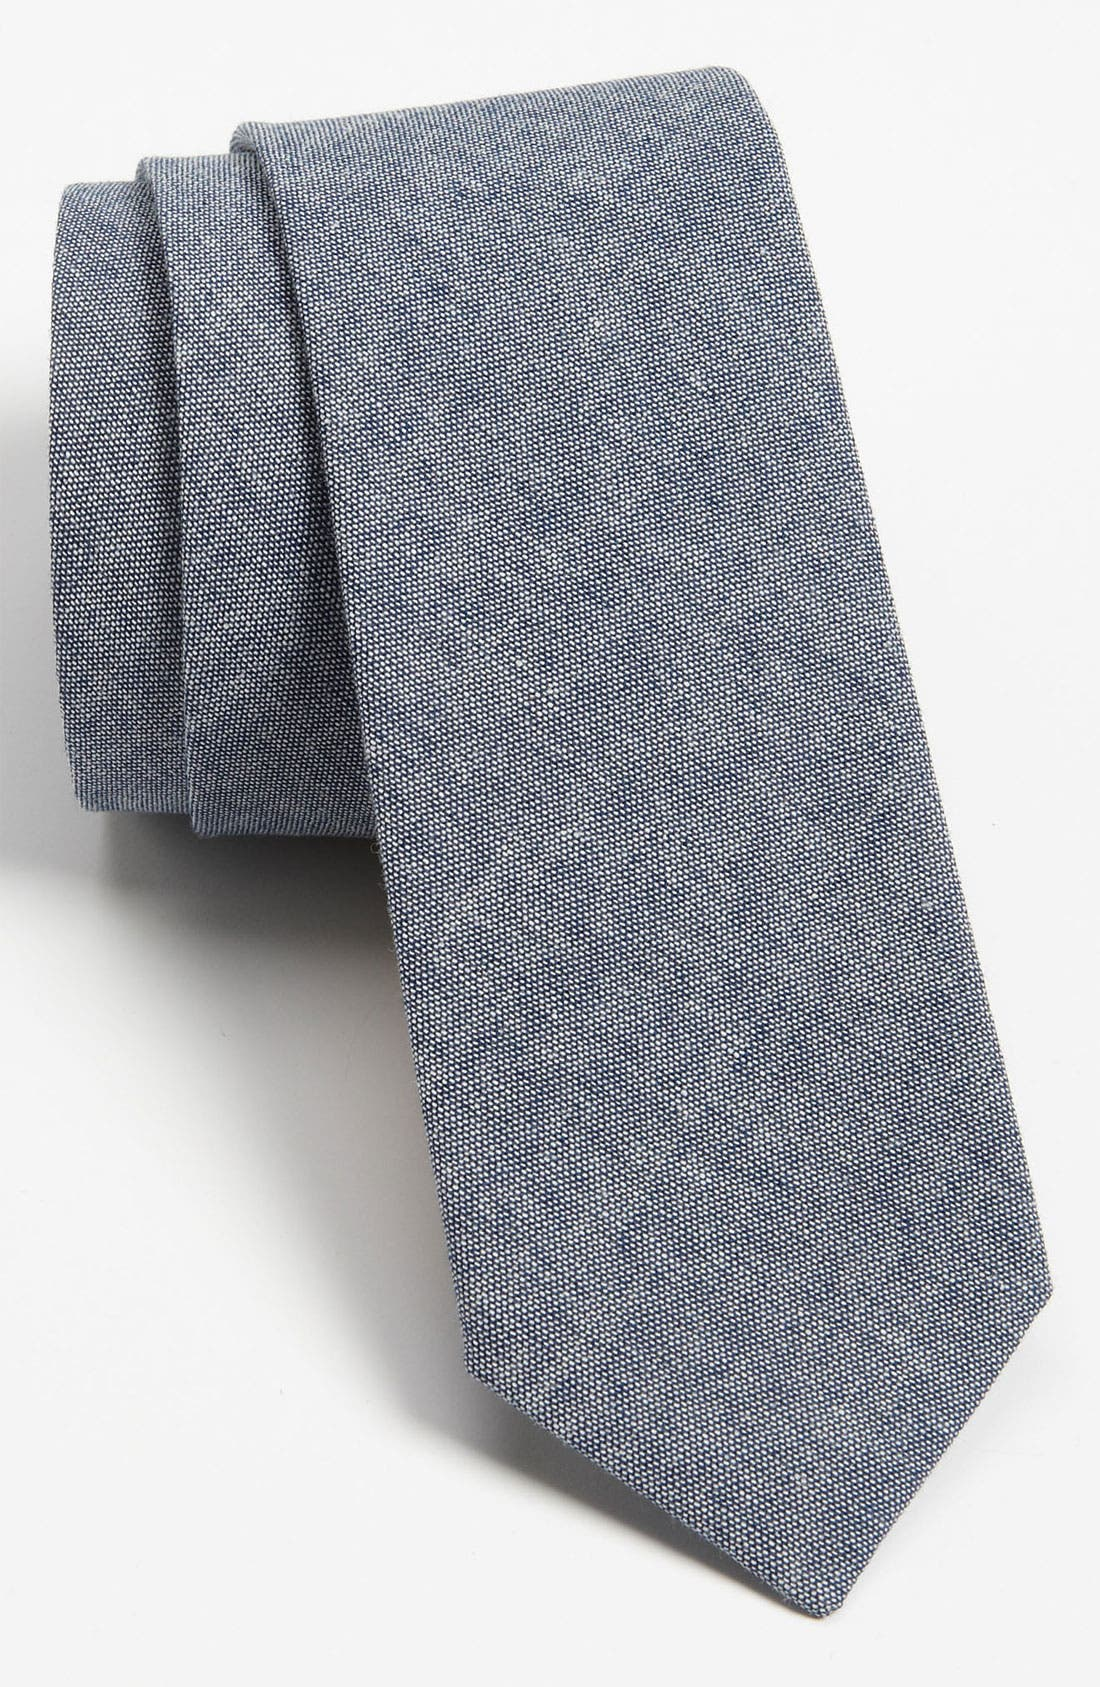 Alternate Image 1 Selected - The Tie Bar Woven Cotton Tie